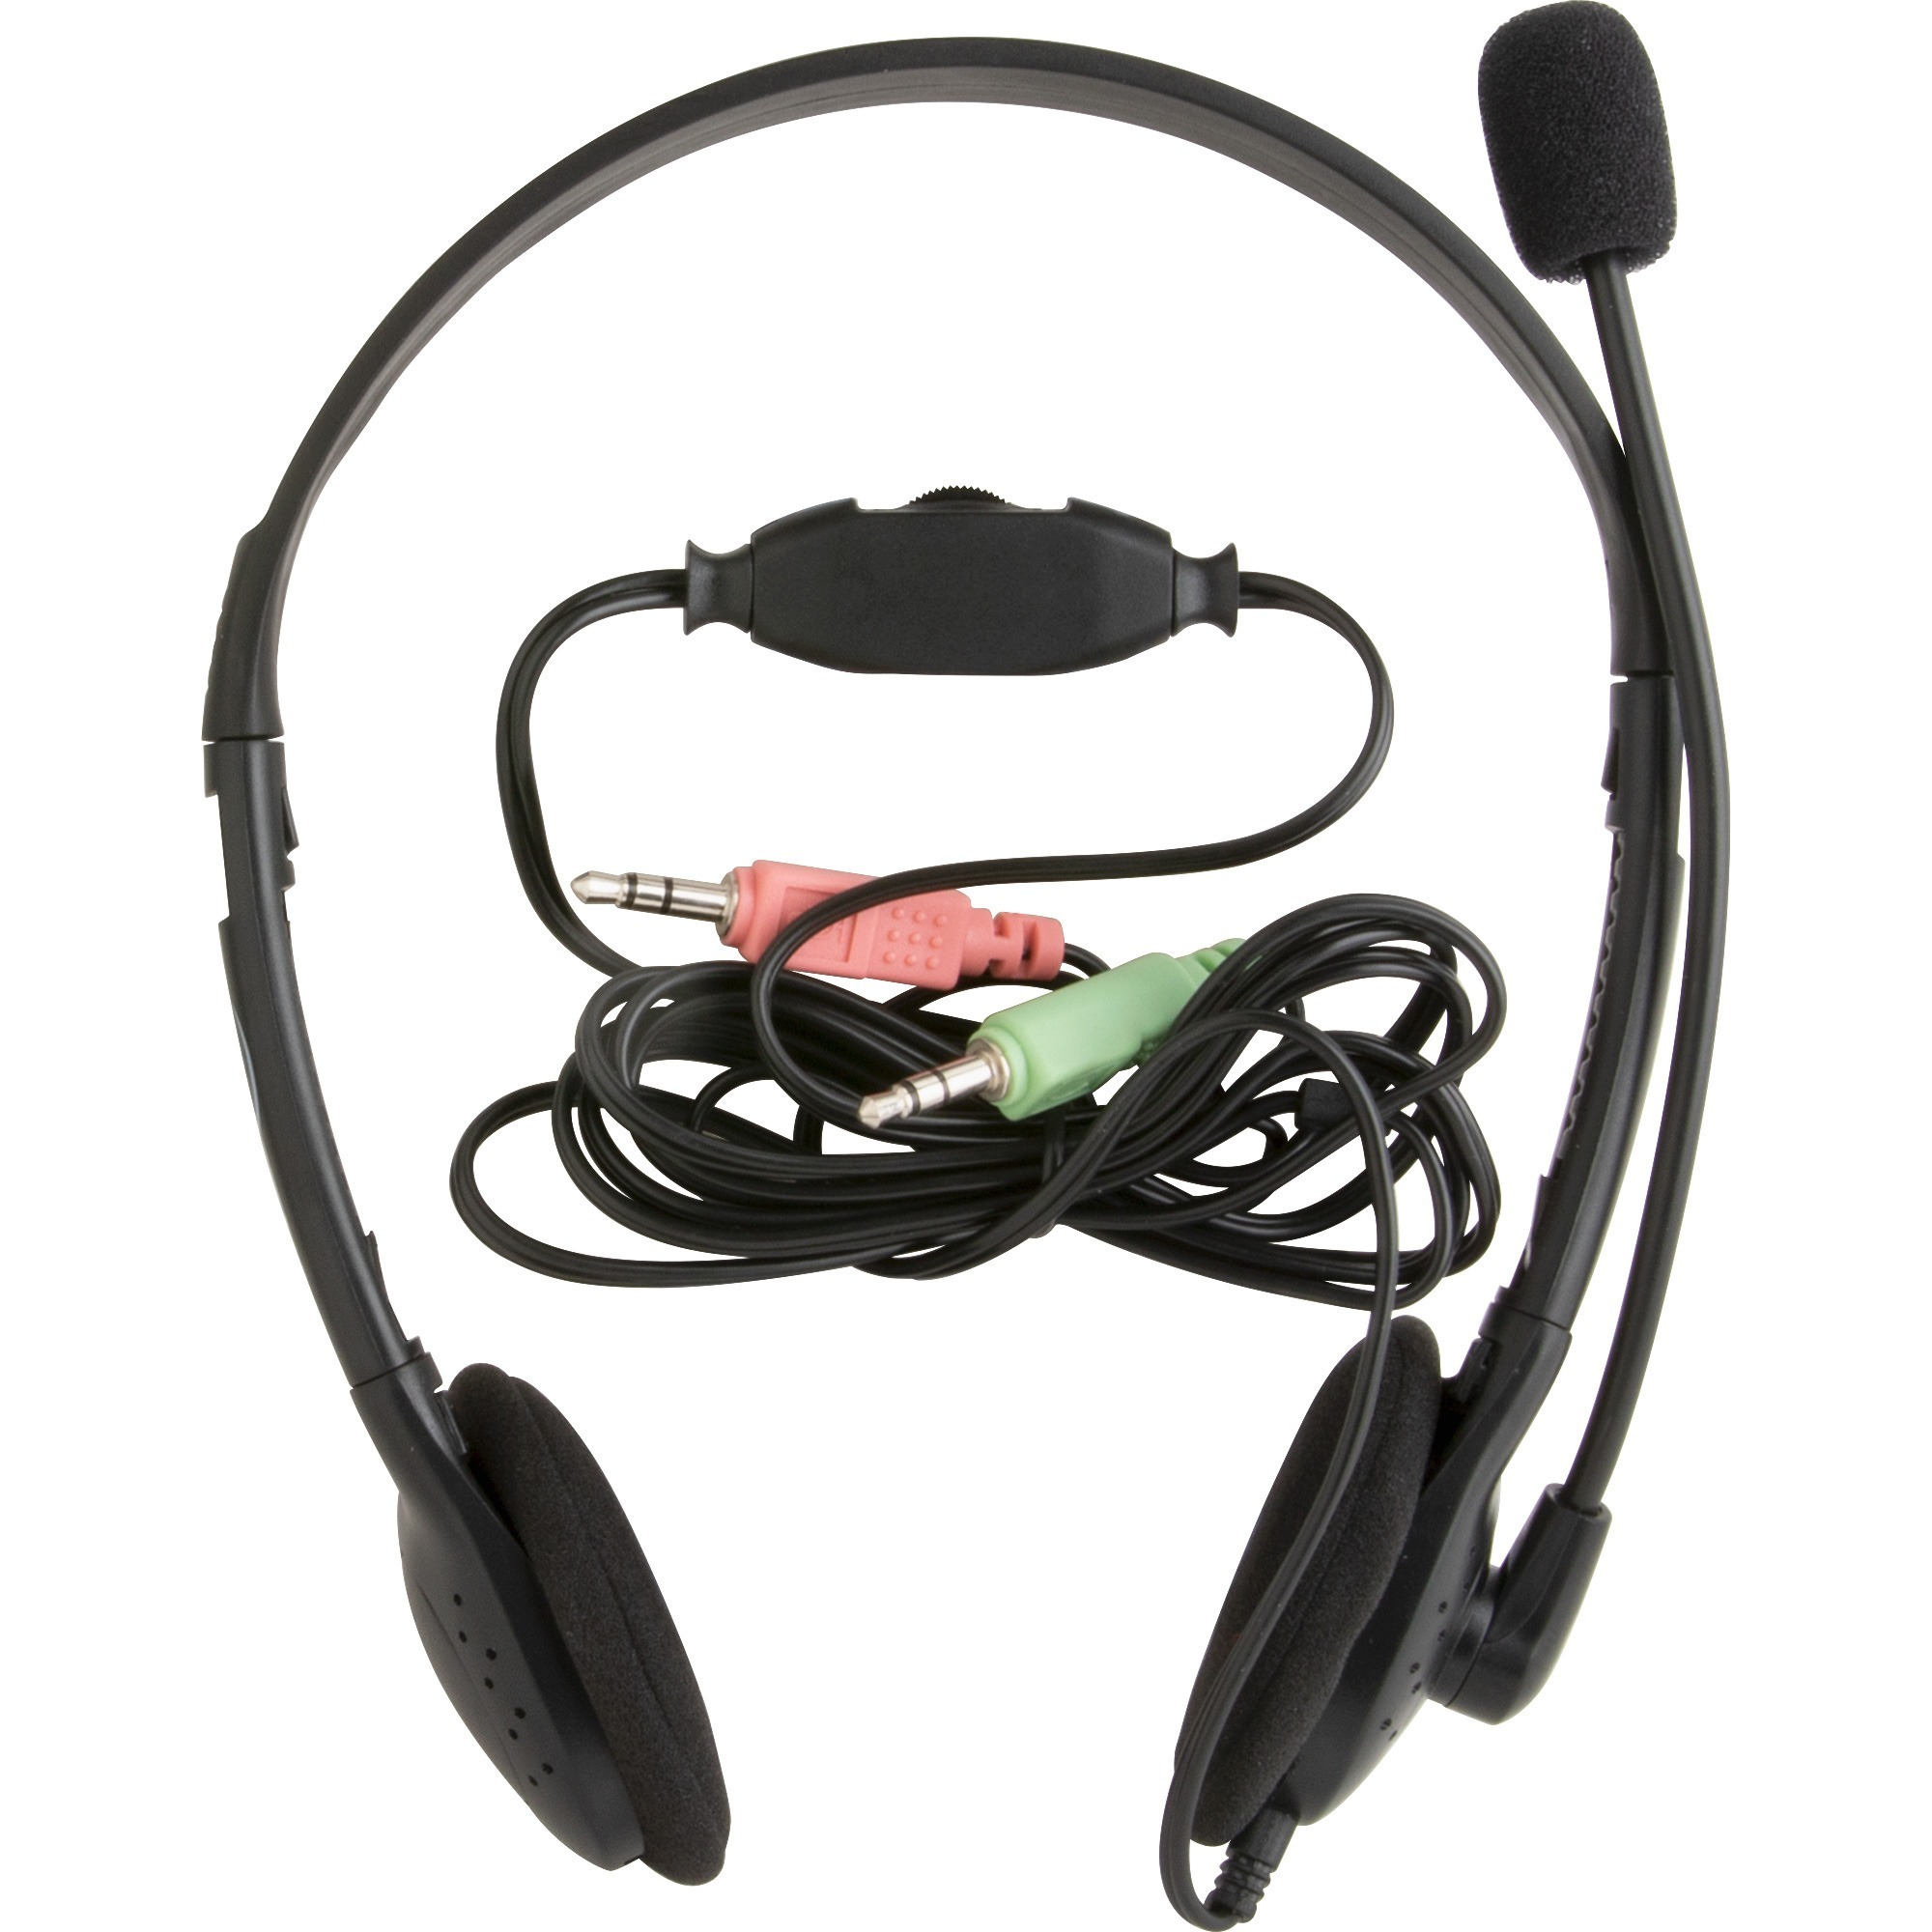 Compucessory, CCS15154, Lightweight Stereo Headphones with Mic, 1, Black